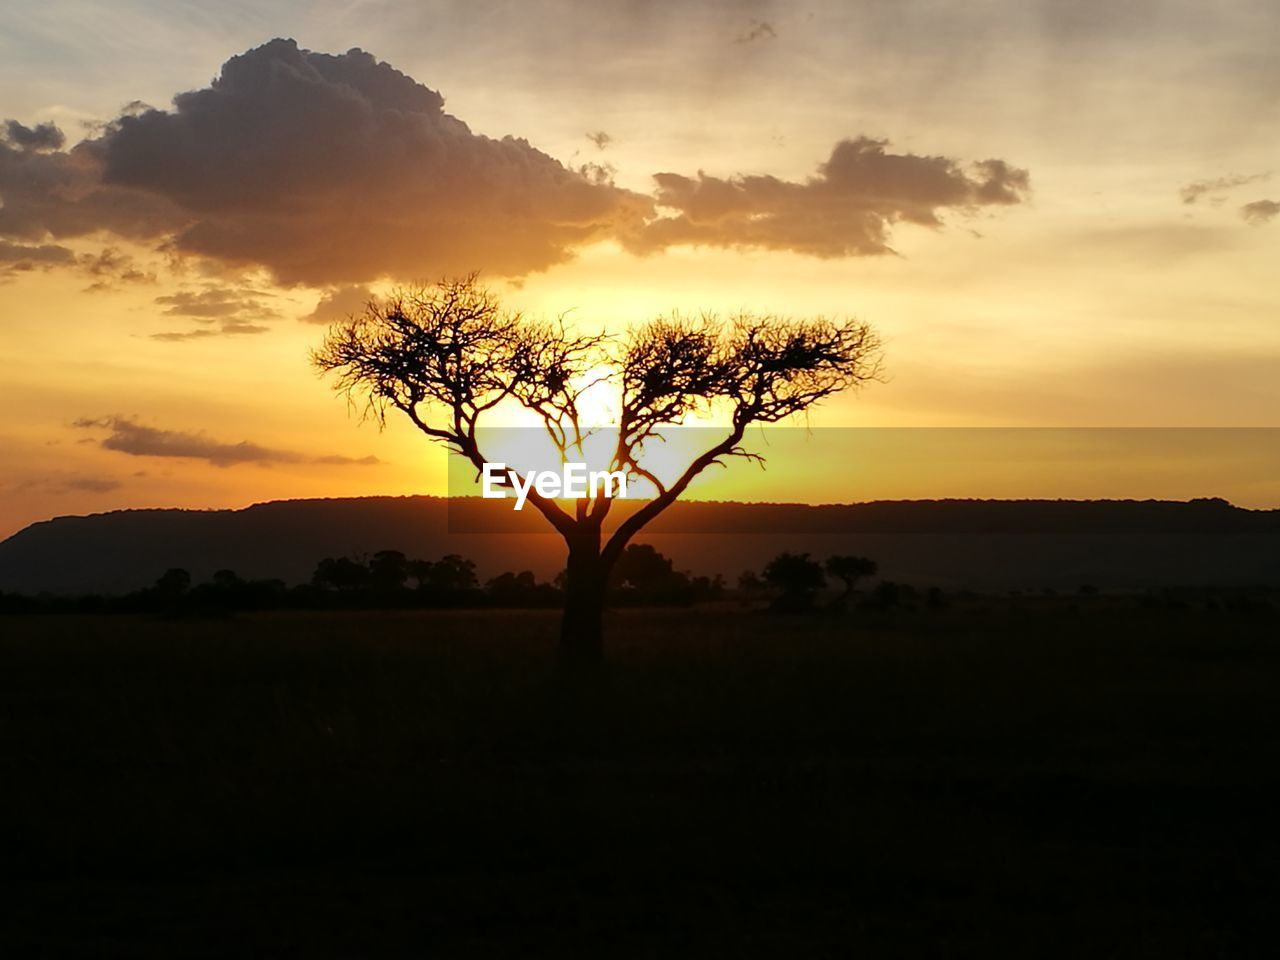 tree, sunset, nature, silhouette, beauty in nature, scenics, tranquility, tranquil scene, orange color, landscape, sky, solitude, outdoors, no people, tree trunk, lone, growth, branch, day